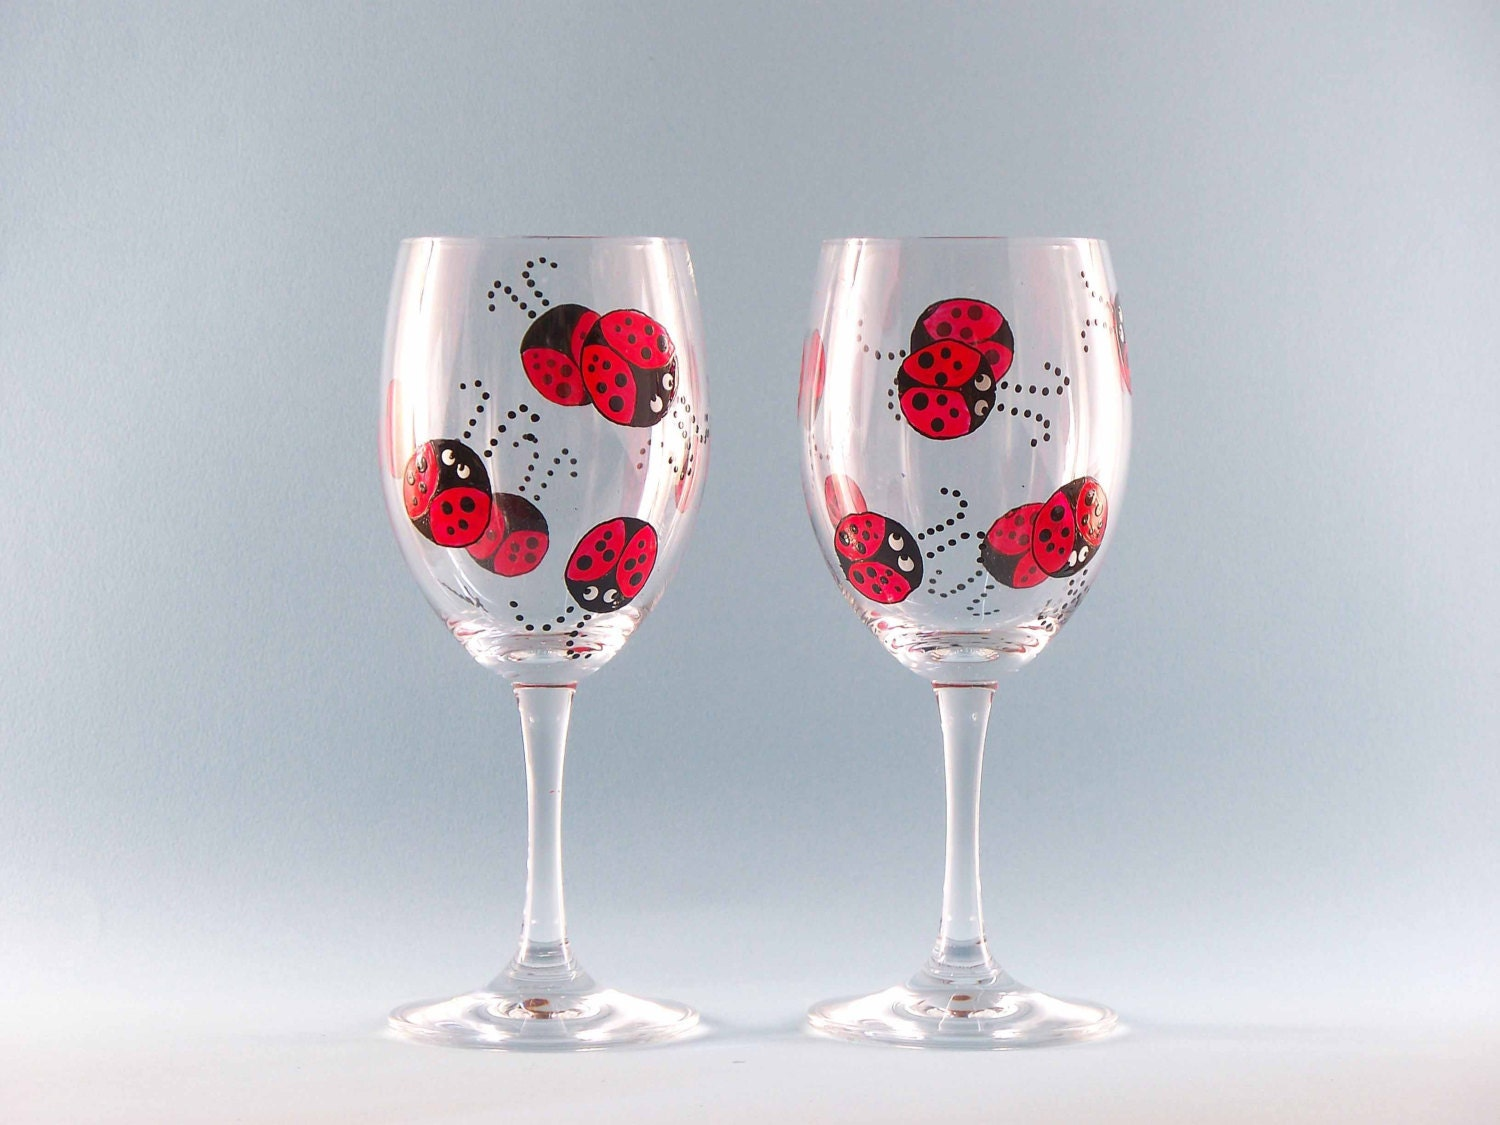 Hand painted ladybug wine glasses cute ladybug design for What can you paint glass with